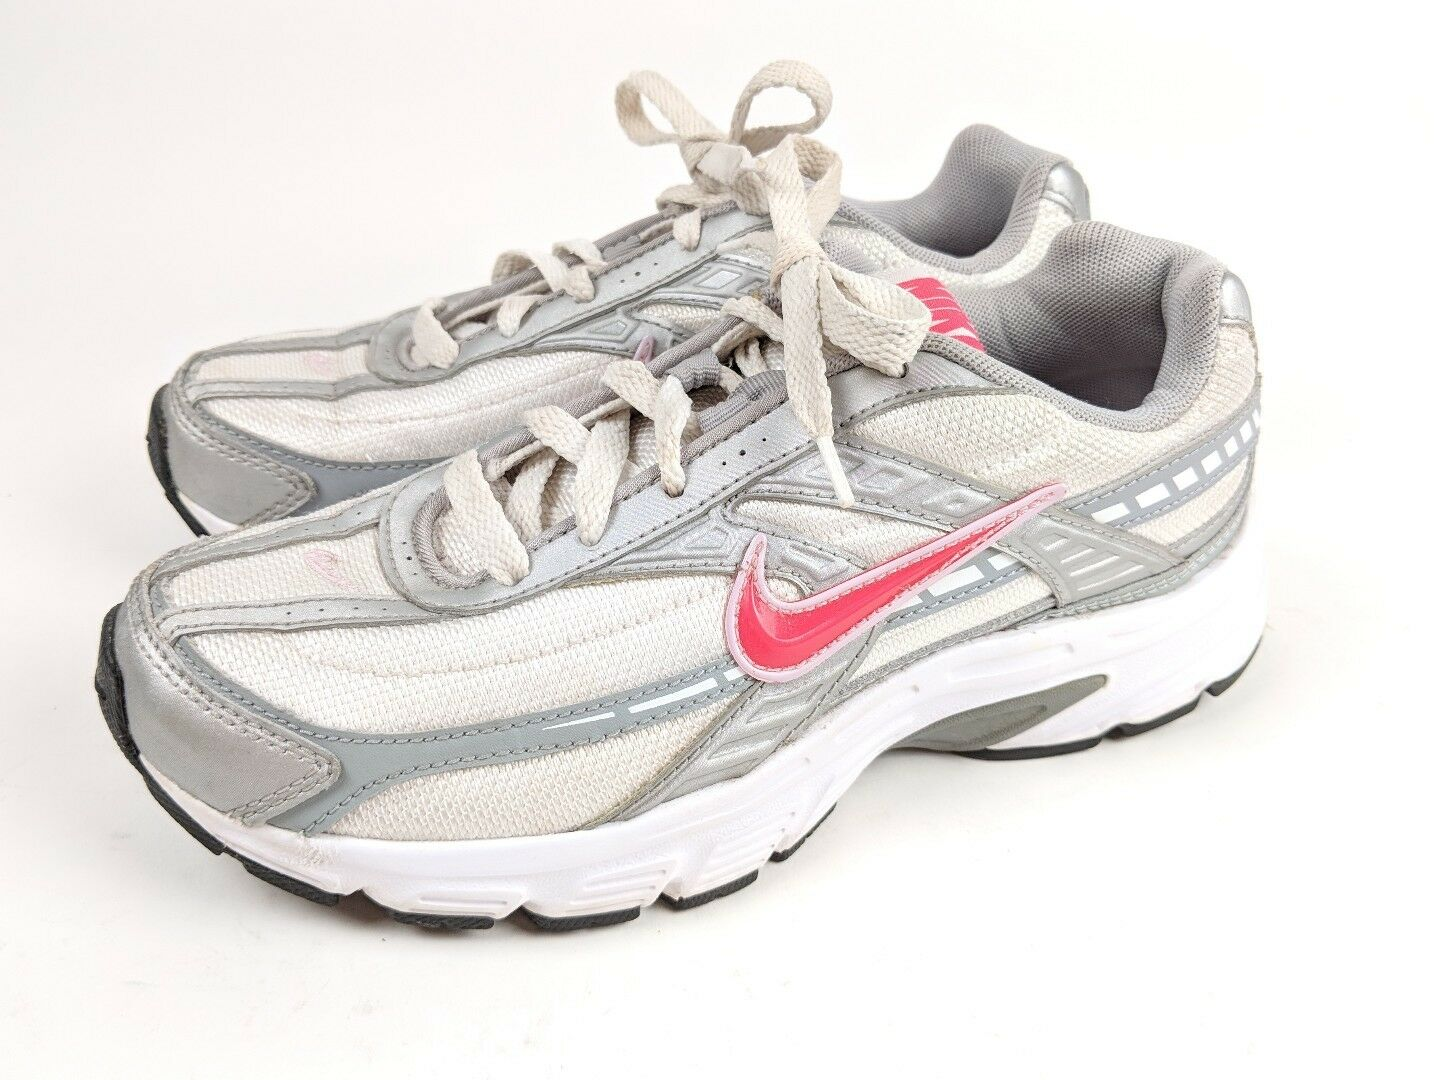 Nike 394053-101 Initiator Gray/Pink Running Athletic Shoes, Women's US 6.5